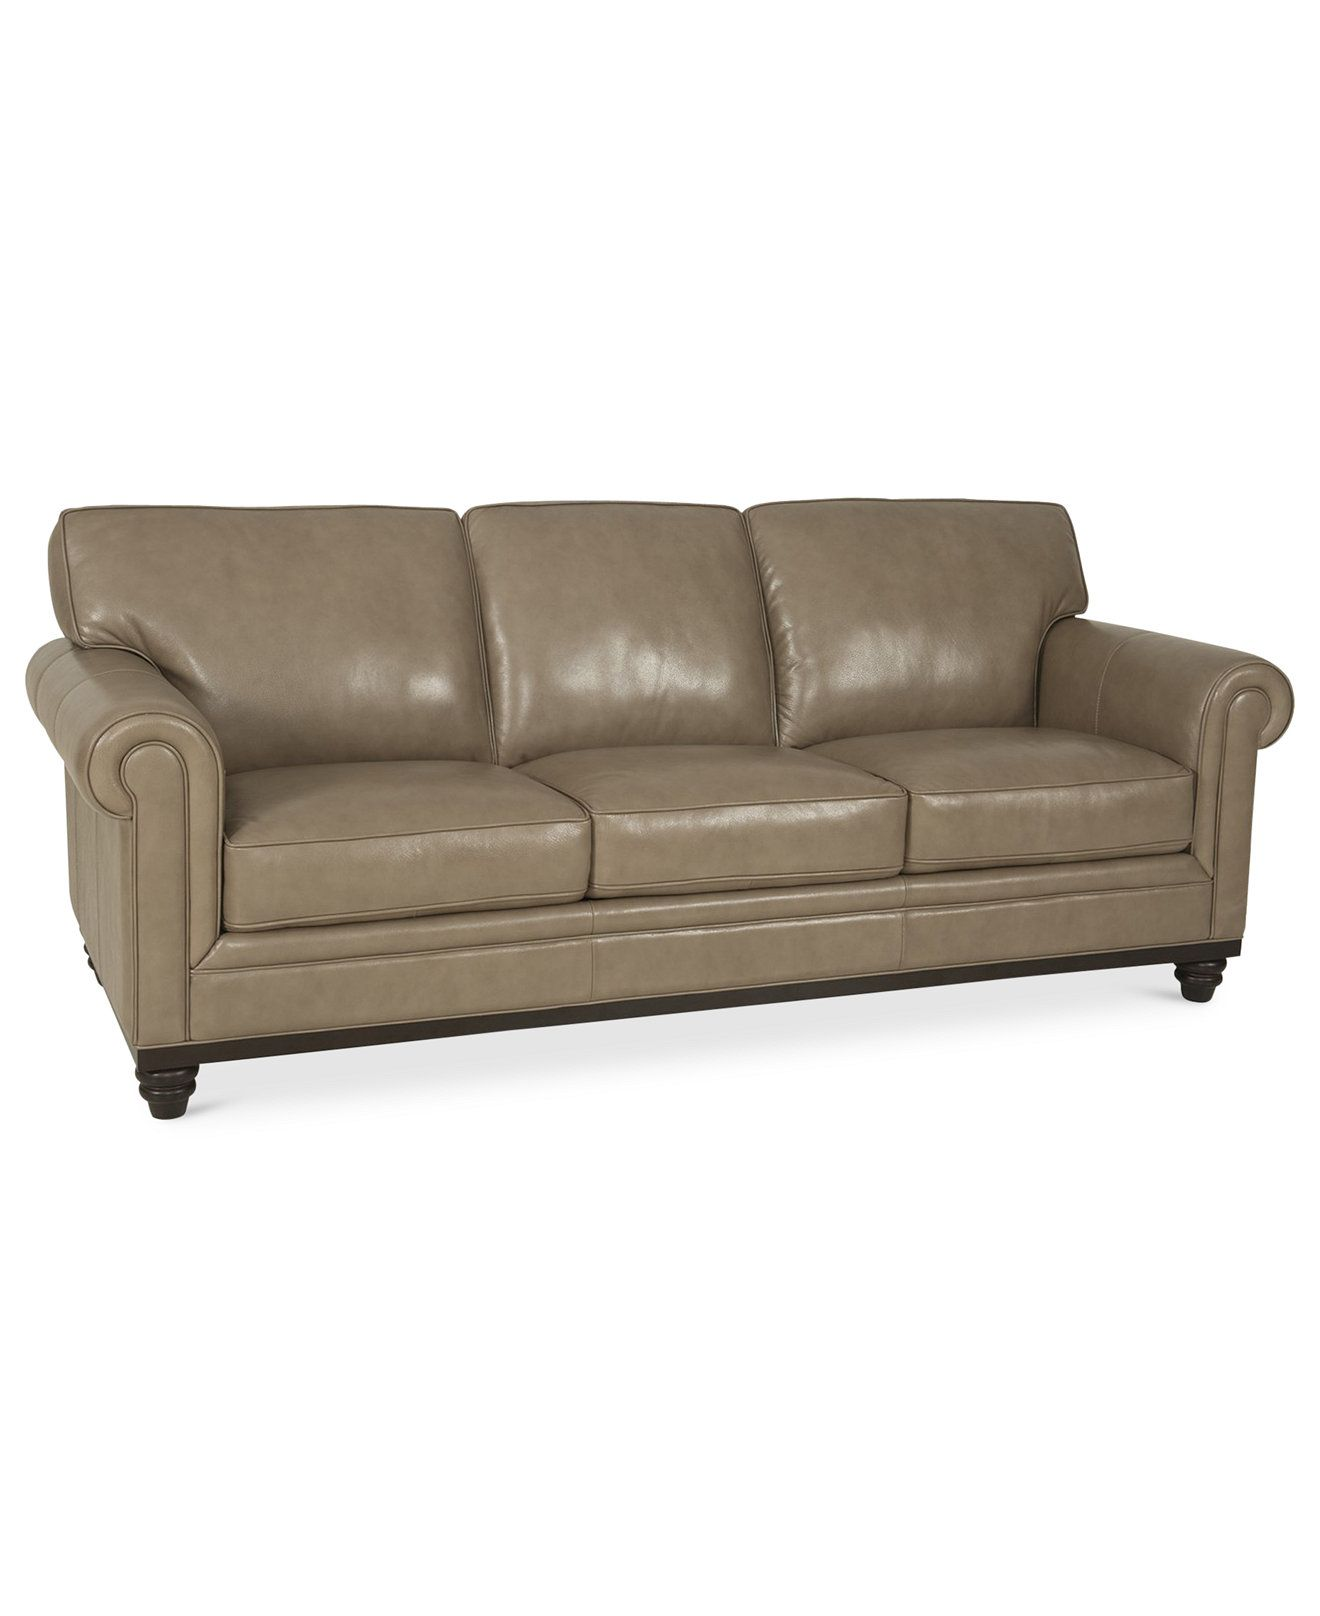 Martha Collection Bradyn 89 Leather Sofa Created For Macy S